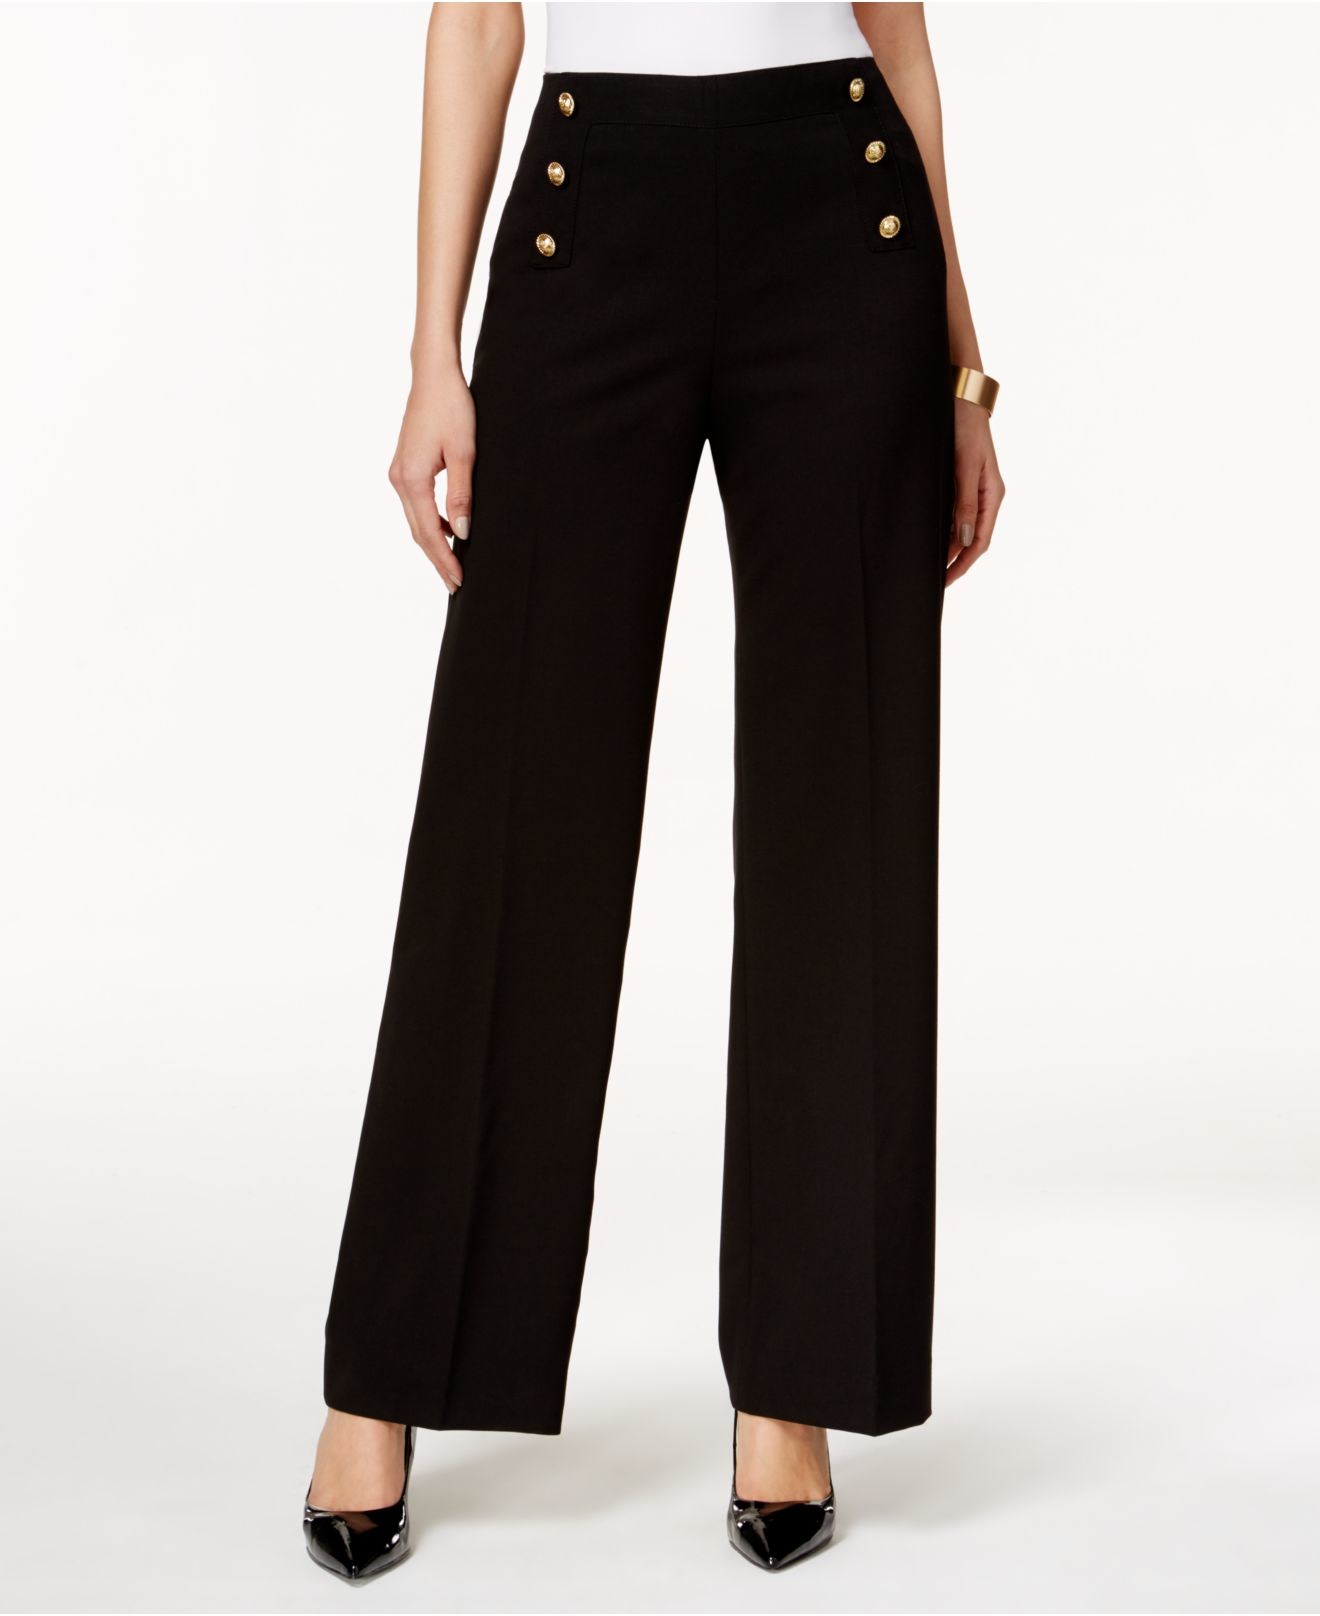 Some ladies wanna give a modern twist to their sailor pants by adding daring and bright colors and fitted, cropped tops. Personally, I like vintage and classic style outfits, by pairing retro blouses with classy blazers and sailor pants.